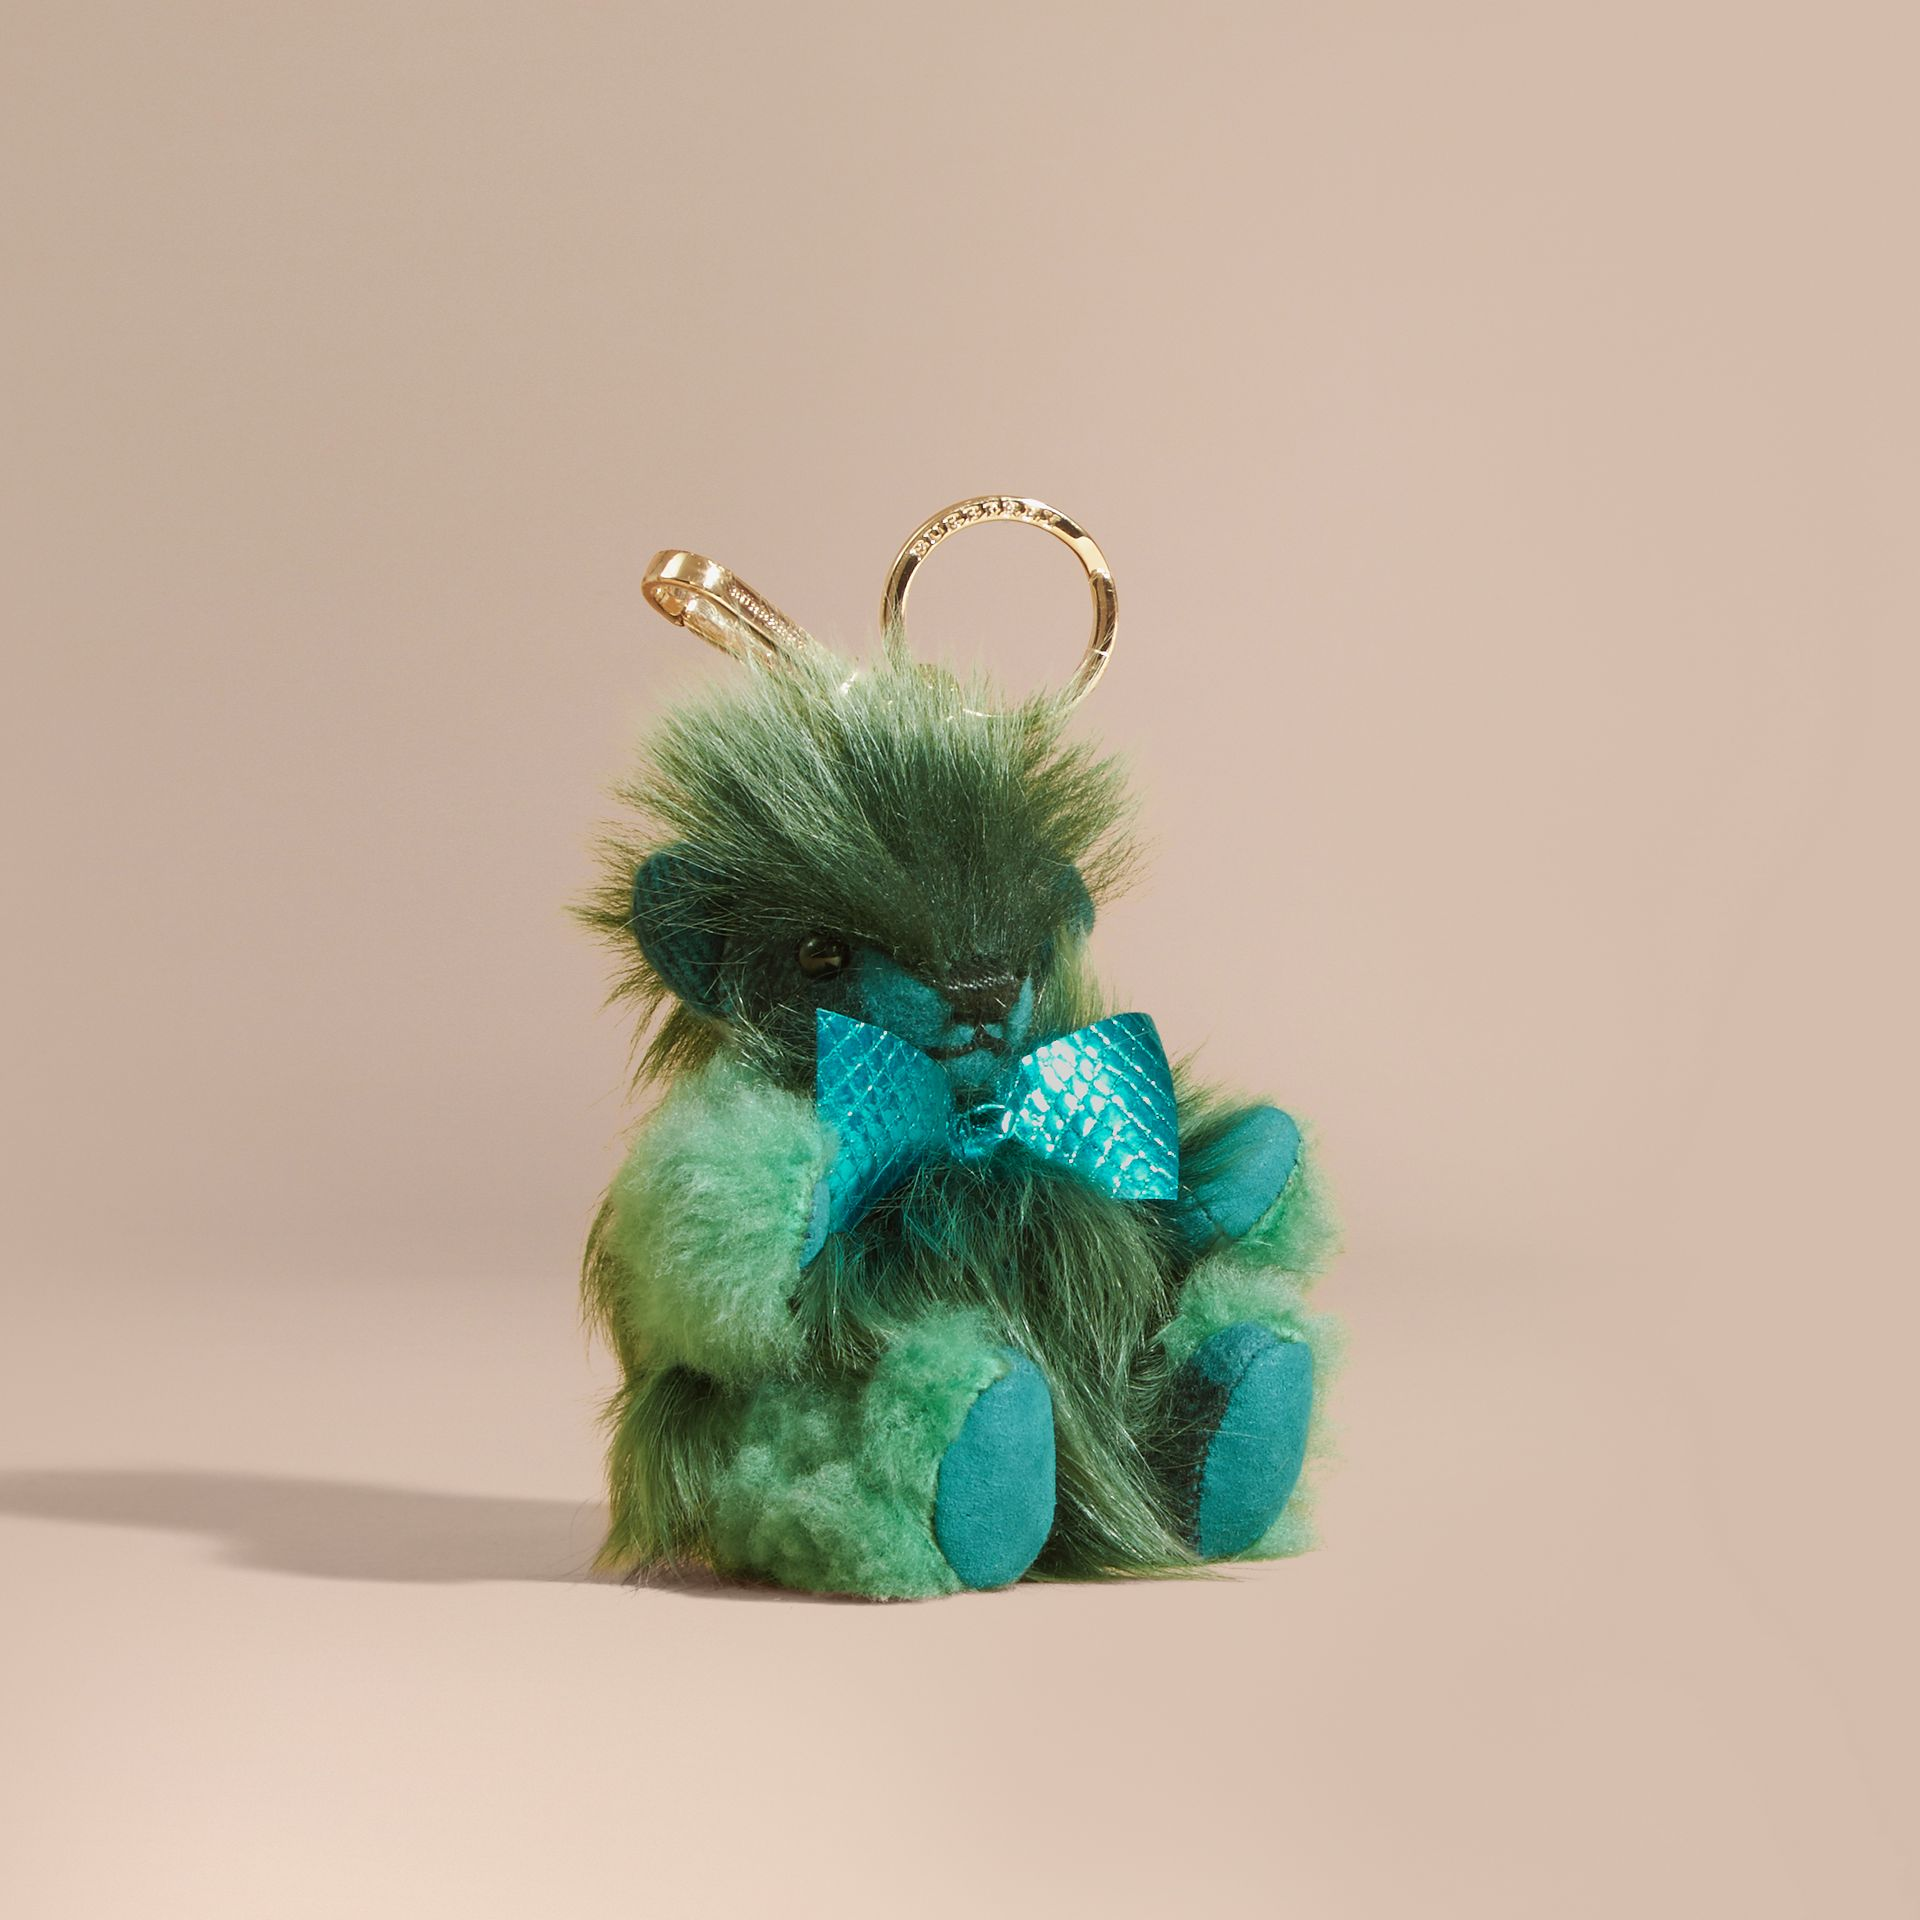 Thomas Bear Pom-Pom Charm in Check Cashmere in Dark Aqua - Women | Burberry Hong Kong - gallery image 1